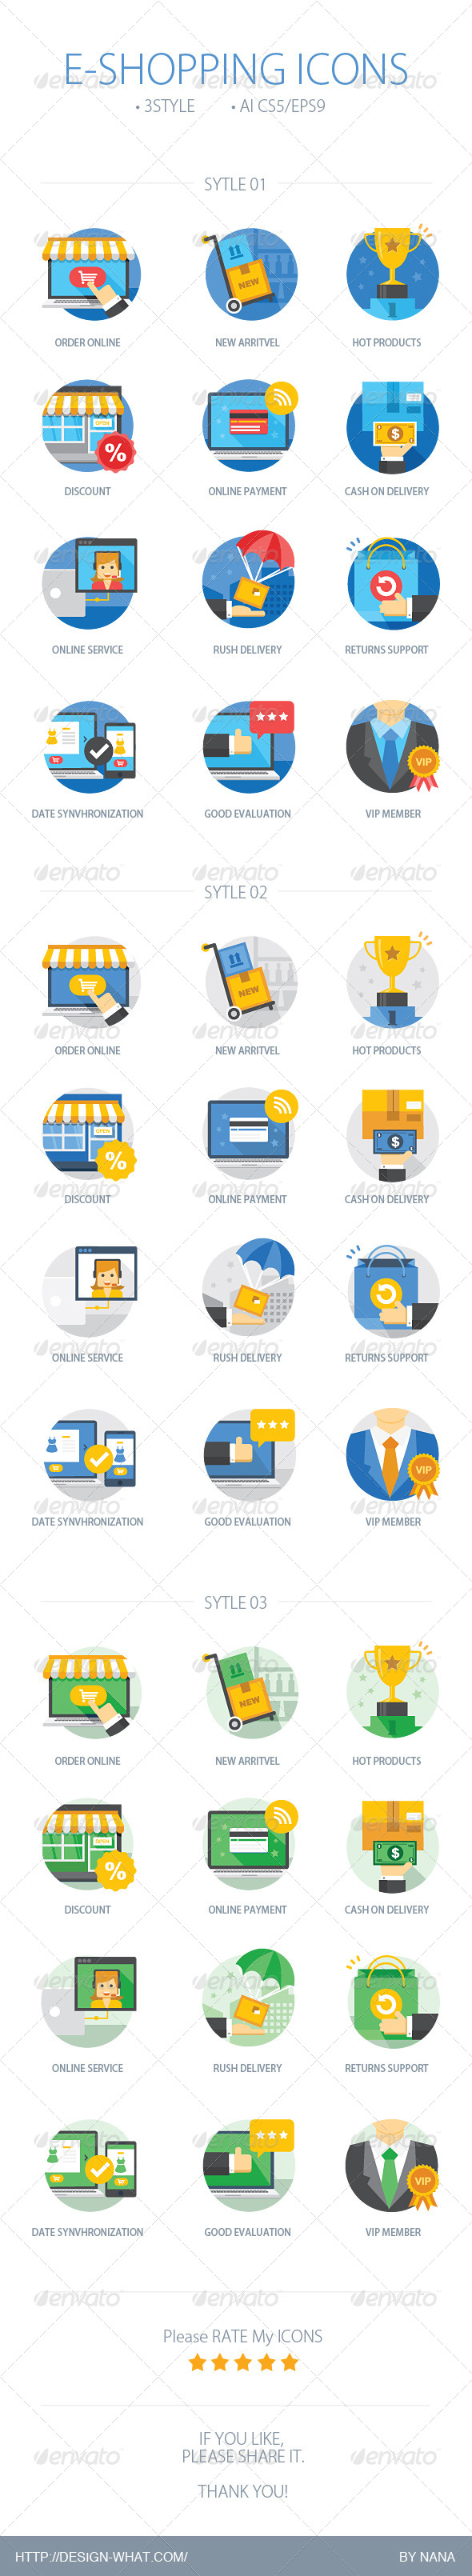 E-Shopping Icons - Web Icons